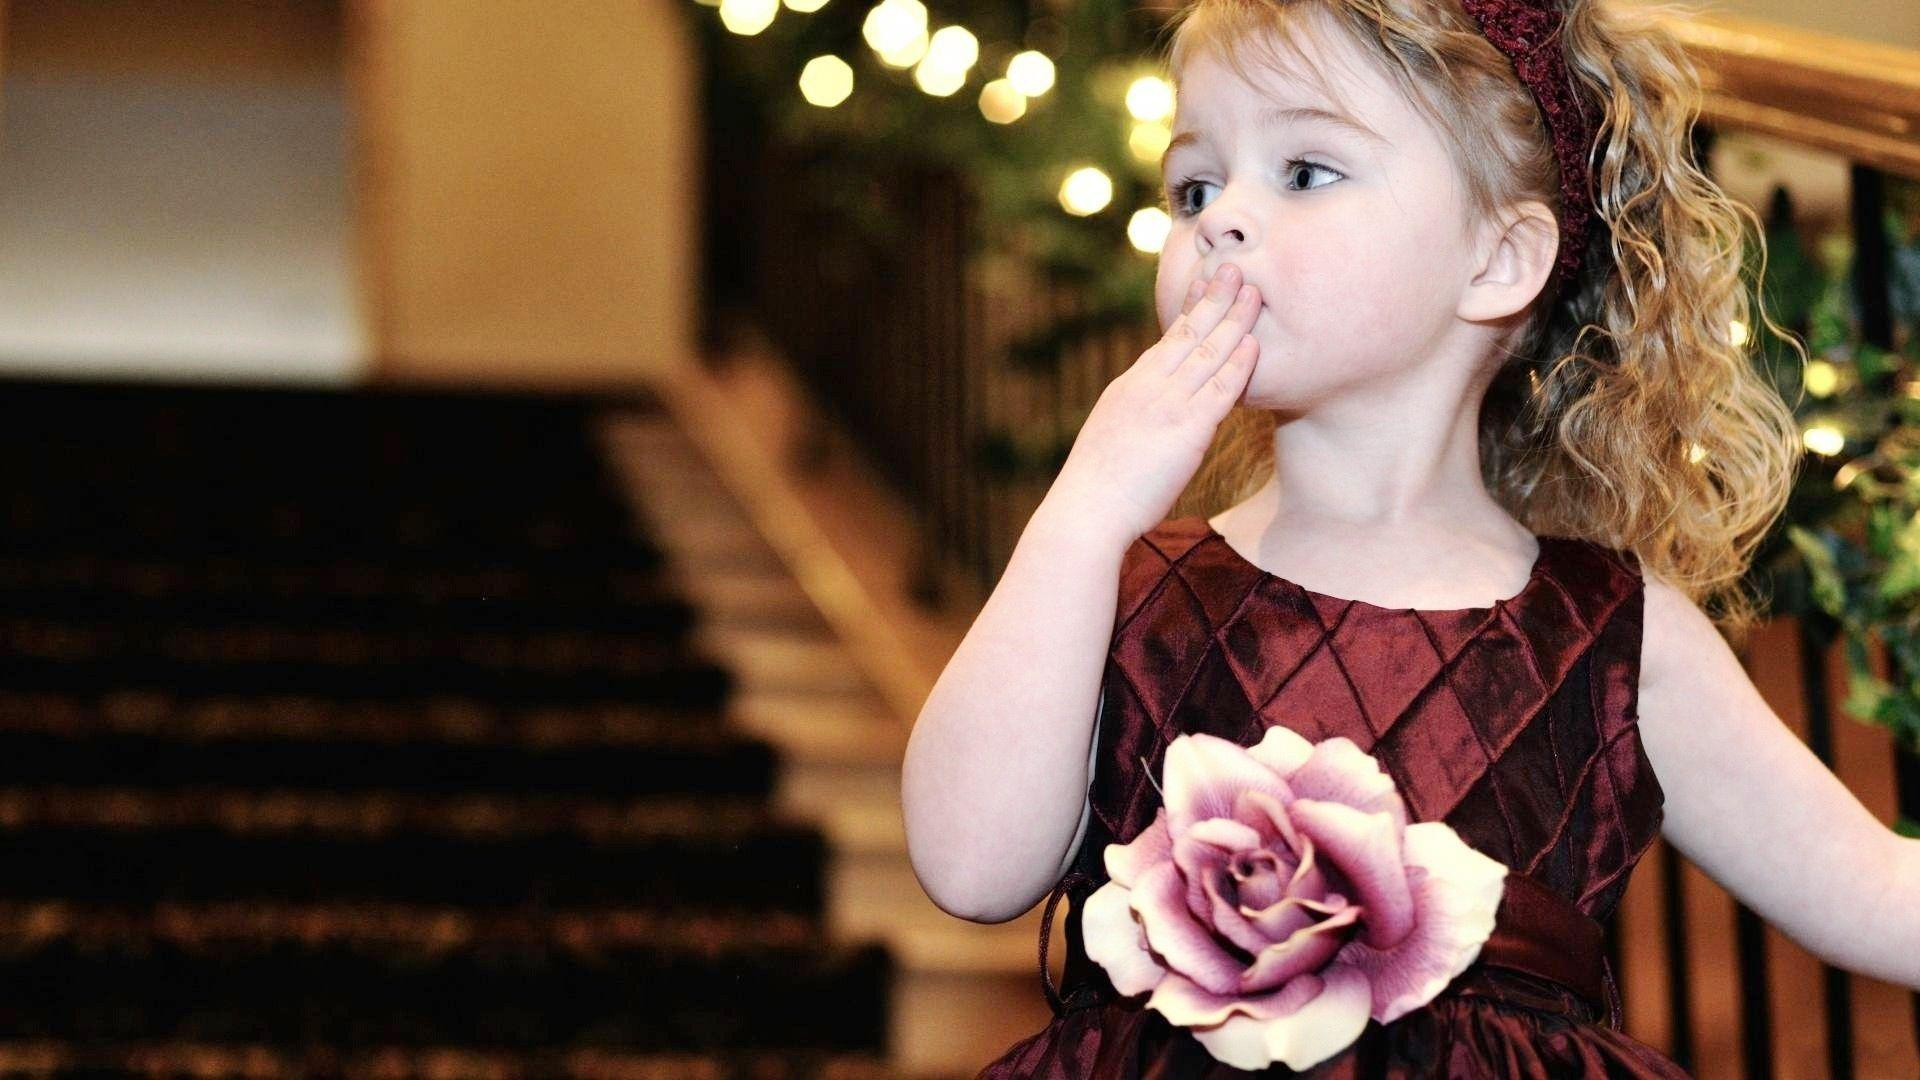 Cute baby kiss hd wallpapers wallpaper cave - Sweet baby girl wallpaper pictures ...